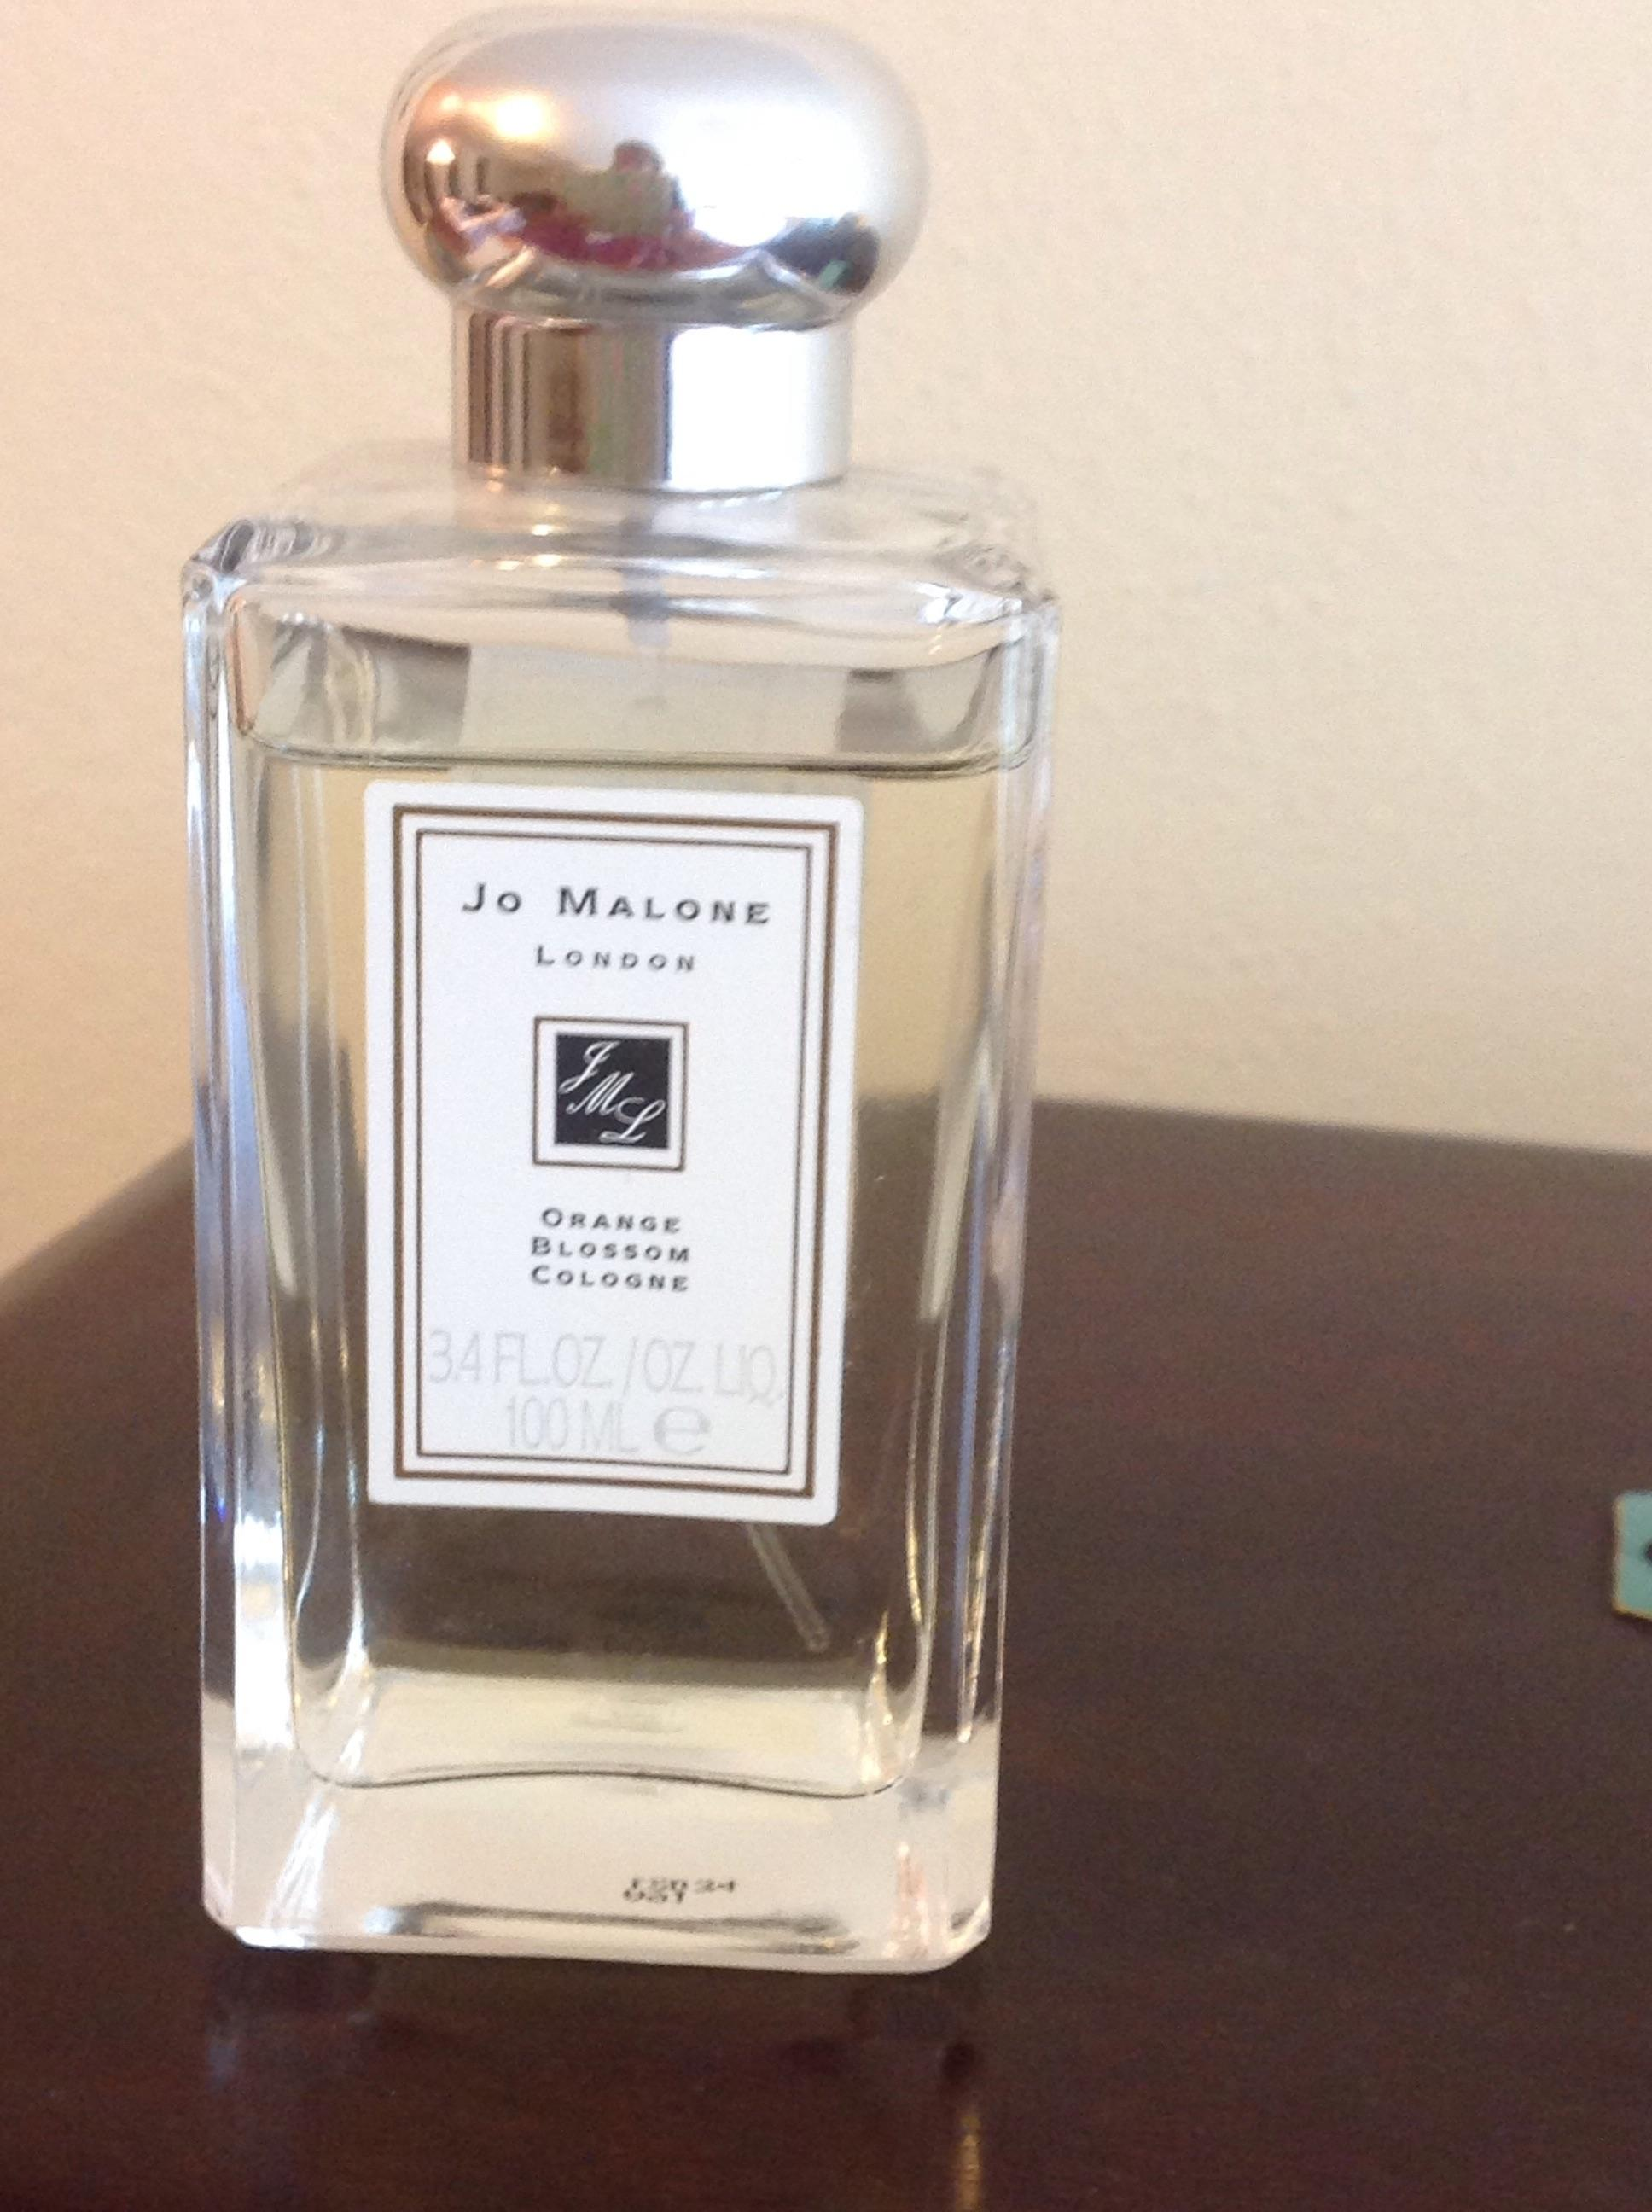 Jo Malone Archives - Man Loves Cologne